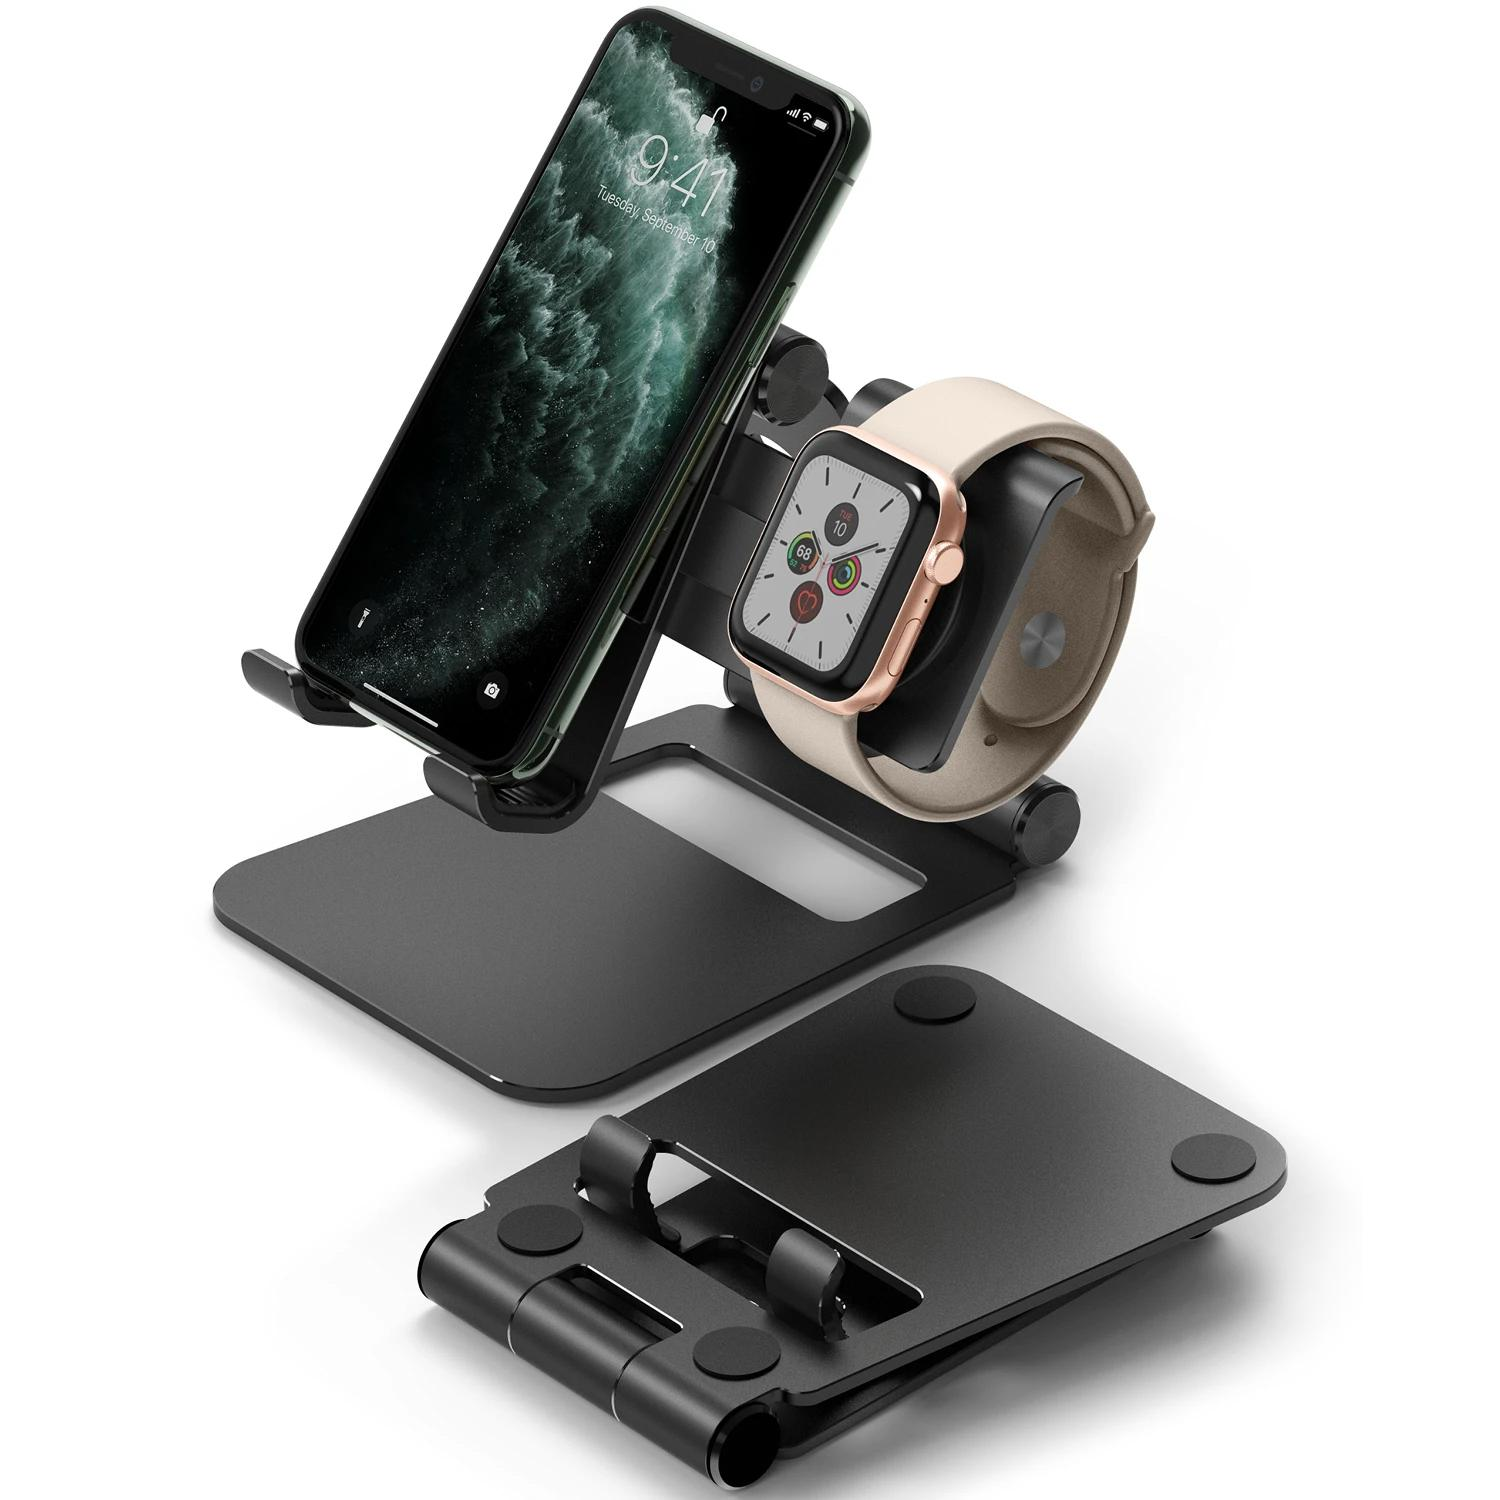 Super Folding Stand for iPhone & Apple Watch